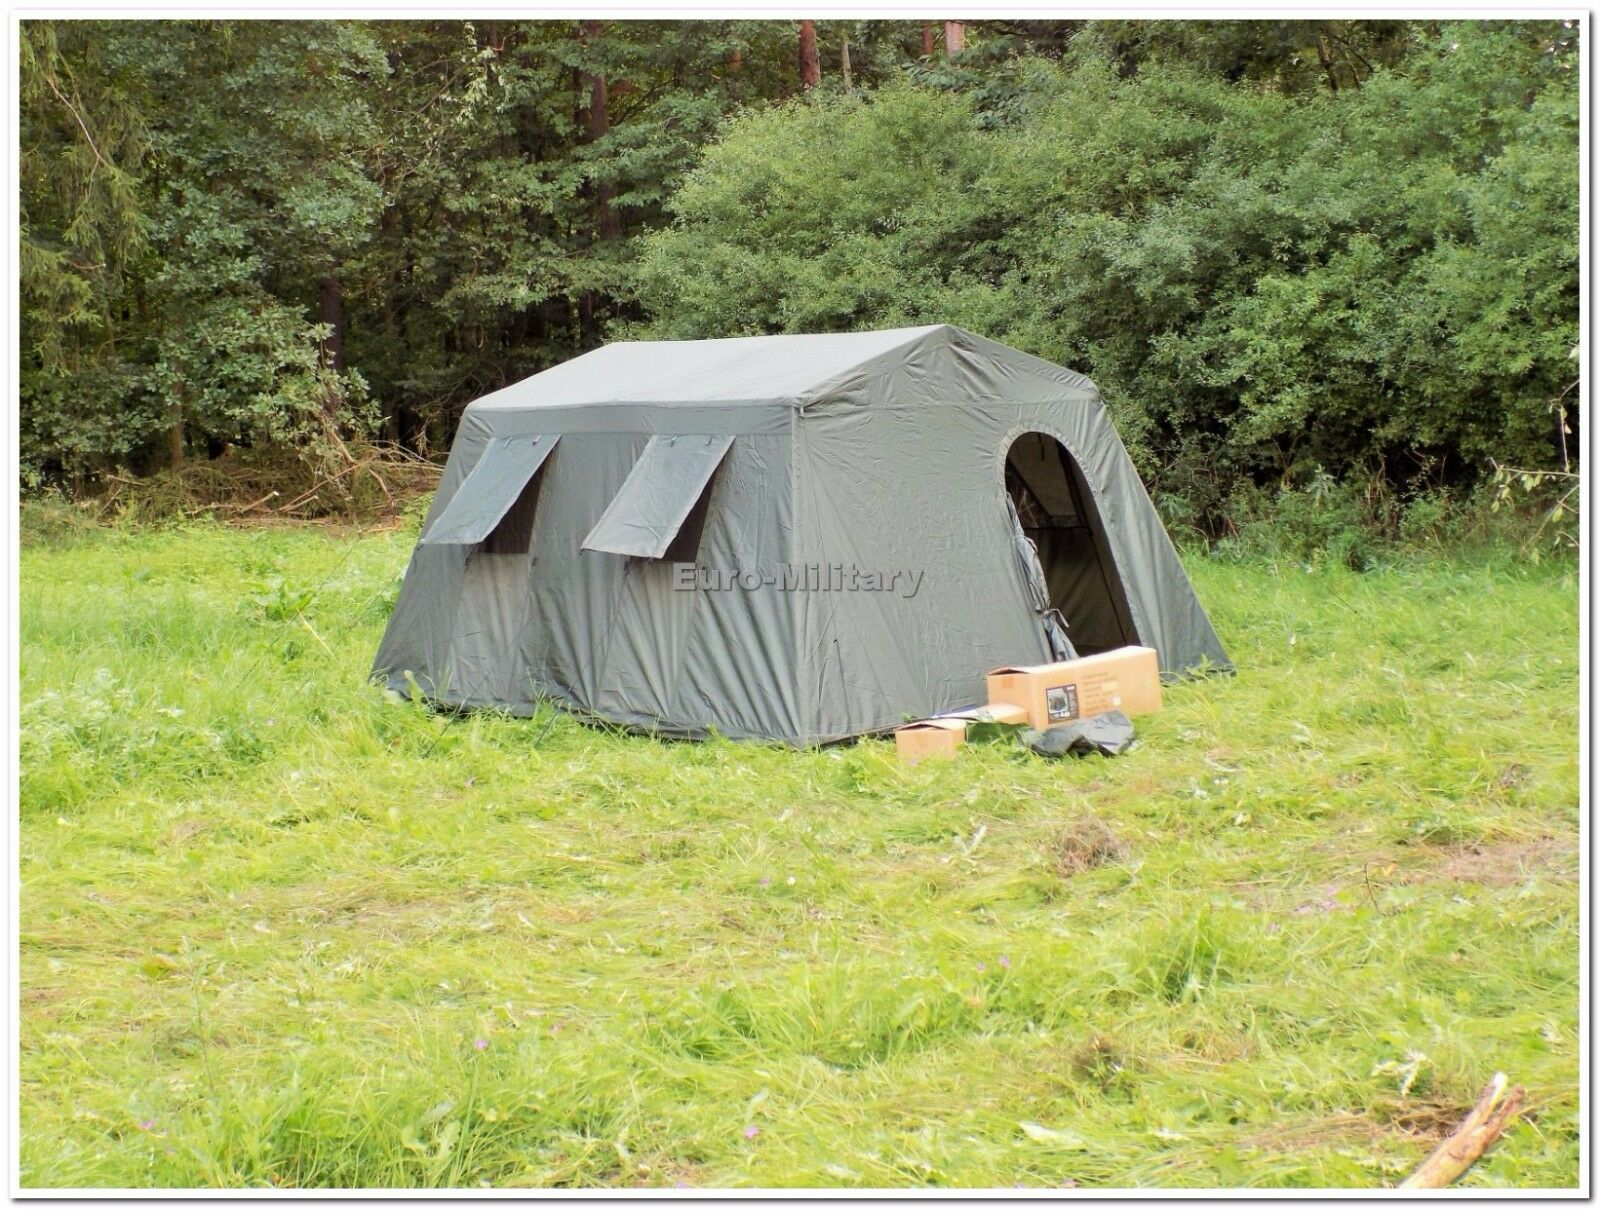 Military Army all'aperto gree BaseCamp Tent Shelter 6 Person  Olive  Factory nuovo